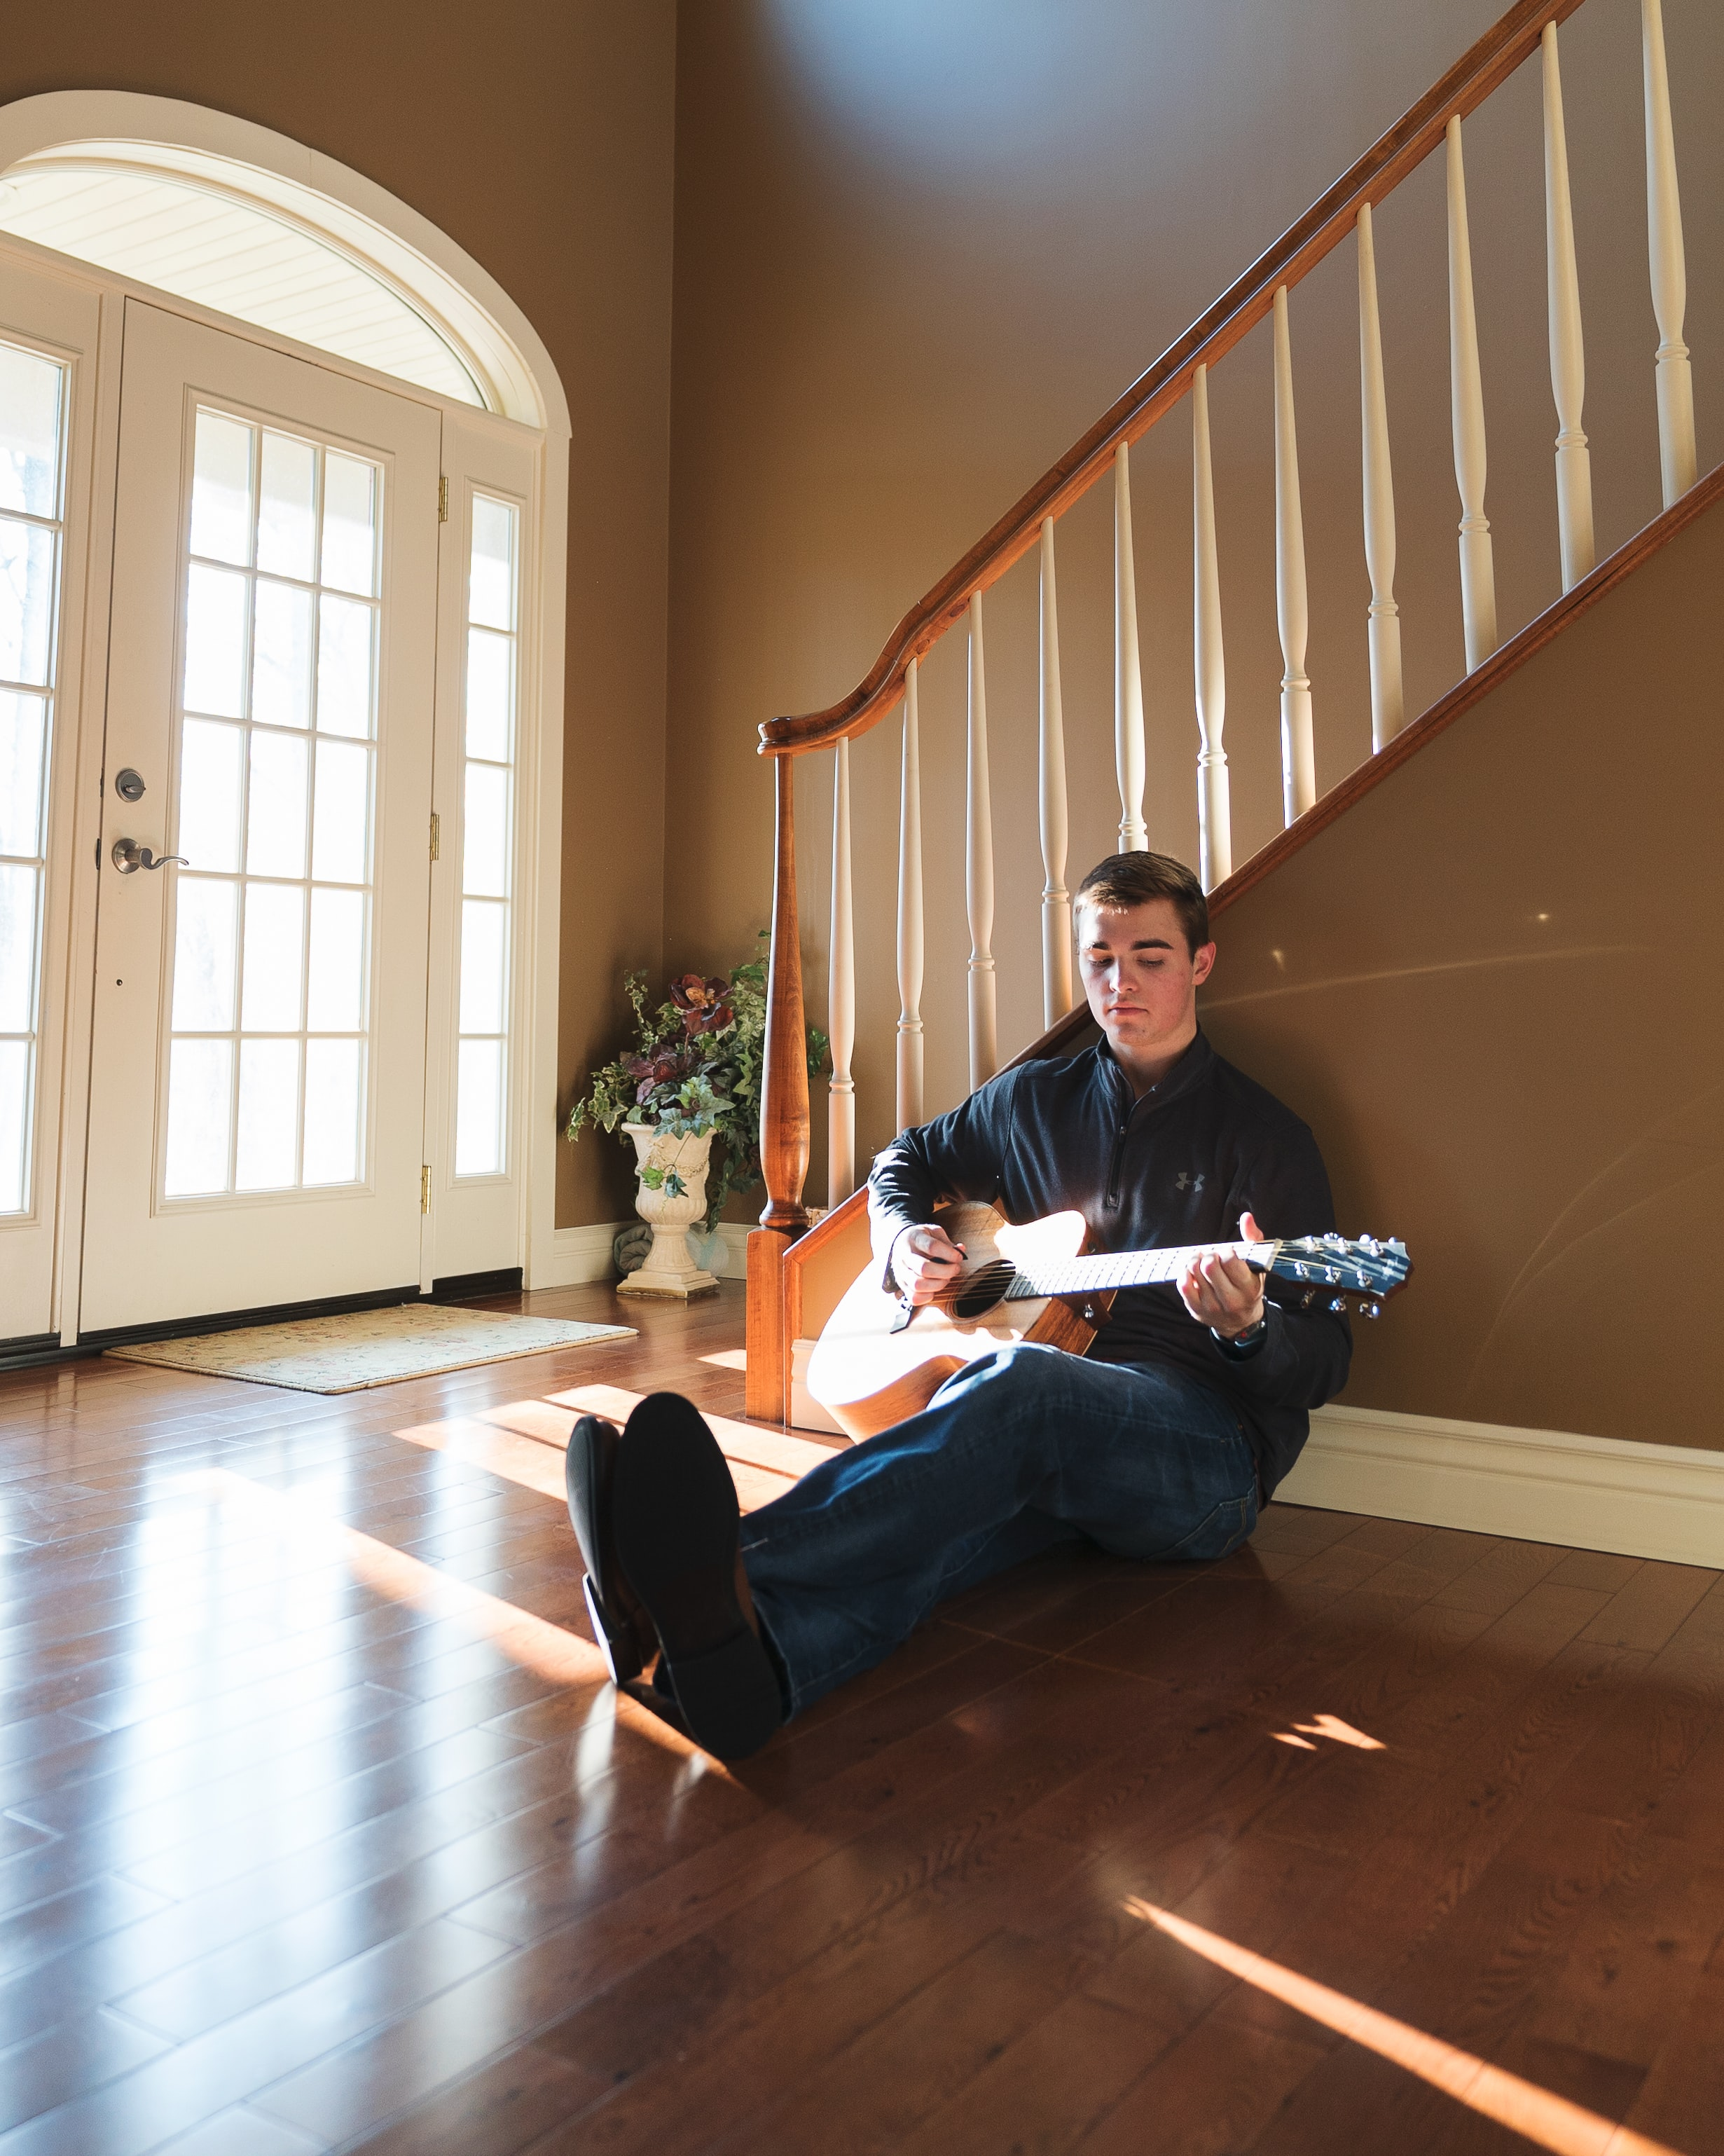 man playing guitar leaning on stairs